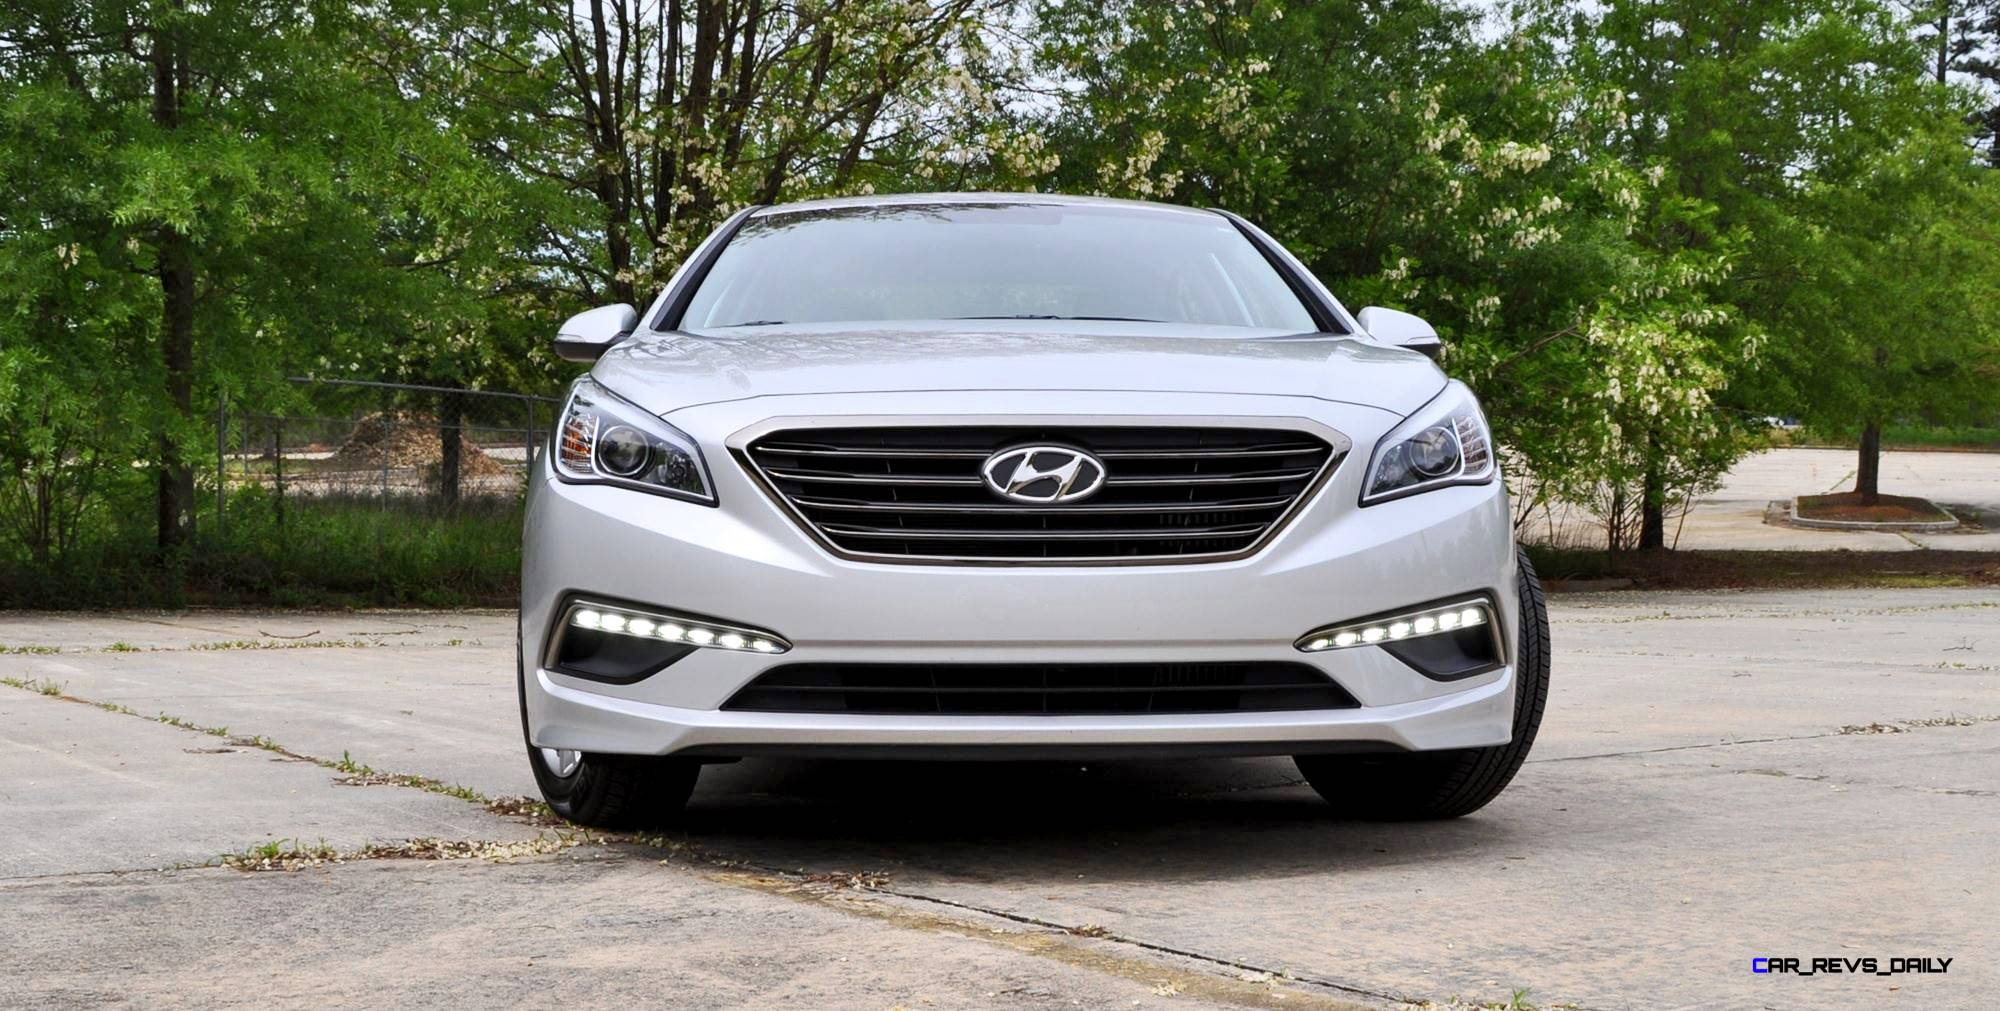 2017 Hyundai Sonata Eco Review 36